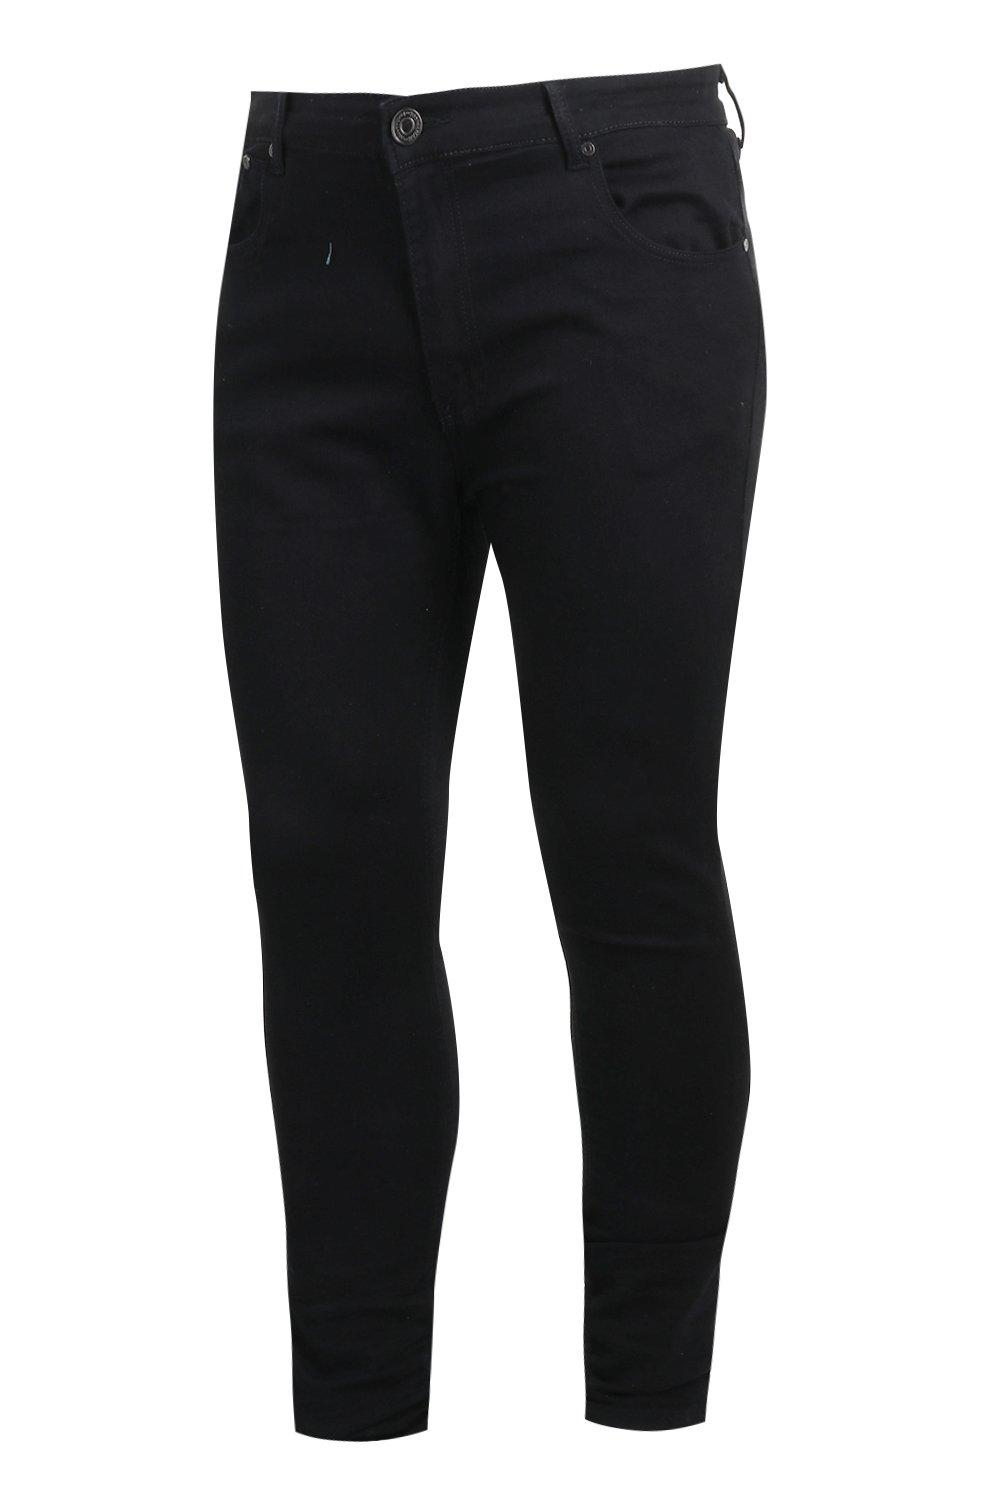 Big Jeans Fit Skinny black And Rigid Tall rwqUrPS